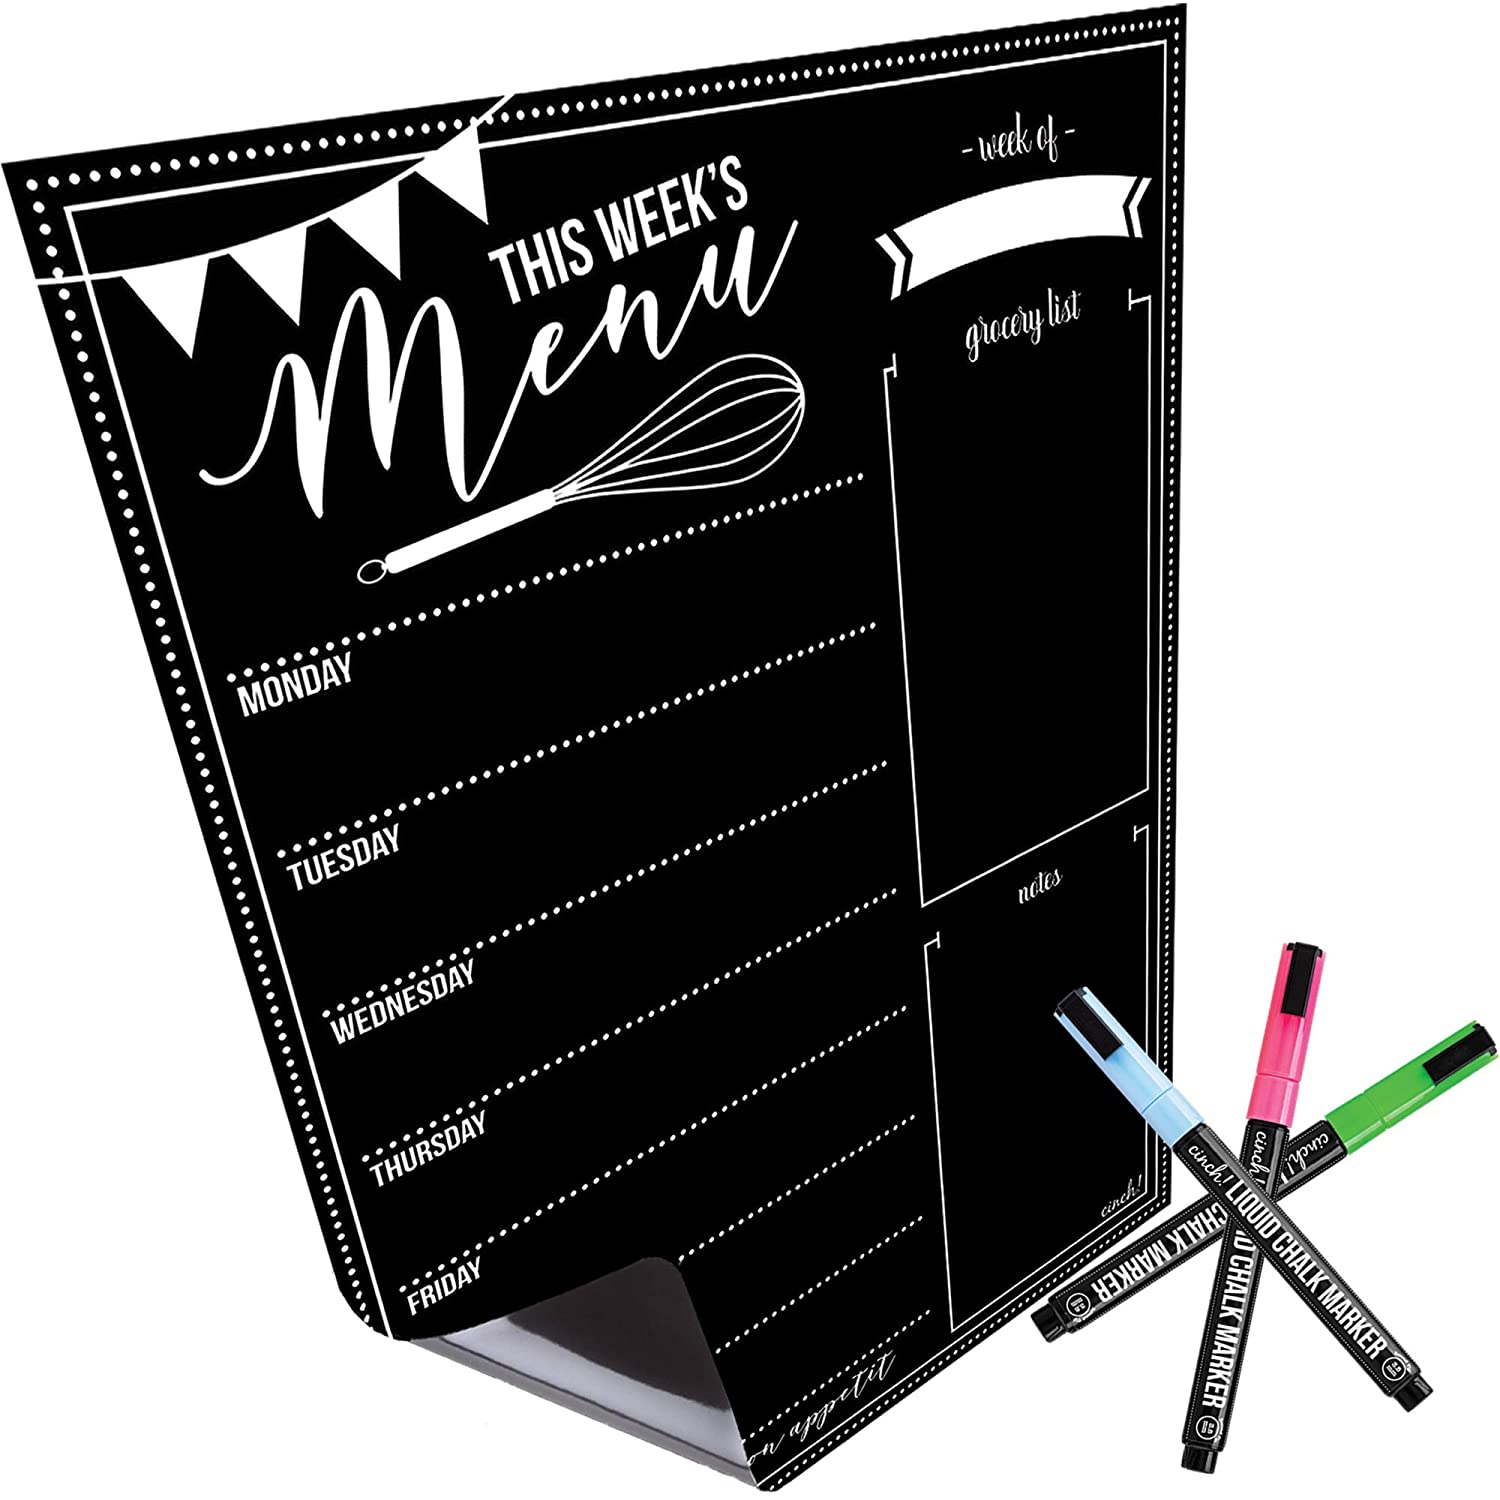 "Magnetic Dry Erase Menu Board for Fridge: with Bright Neon Chalk Markers - 16x12"" - Weekly Meal Planner Blackboard and Grocery List Notepad for Kitchen Refrigerator - Whiteboard Chalkboard Magnet"